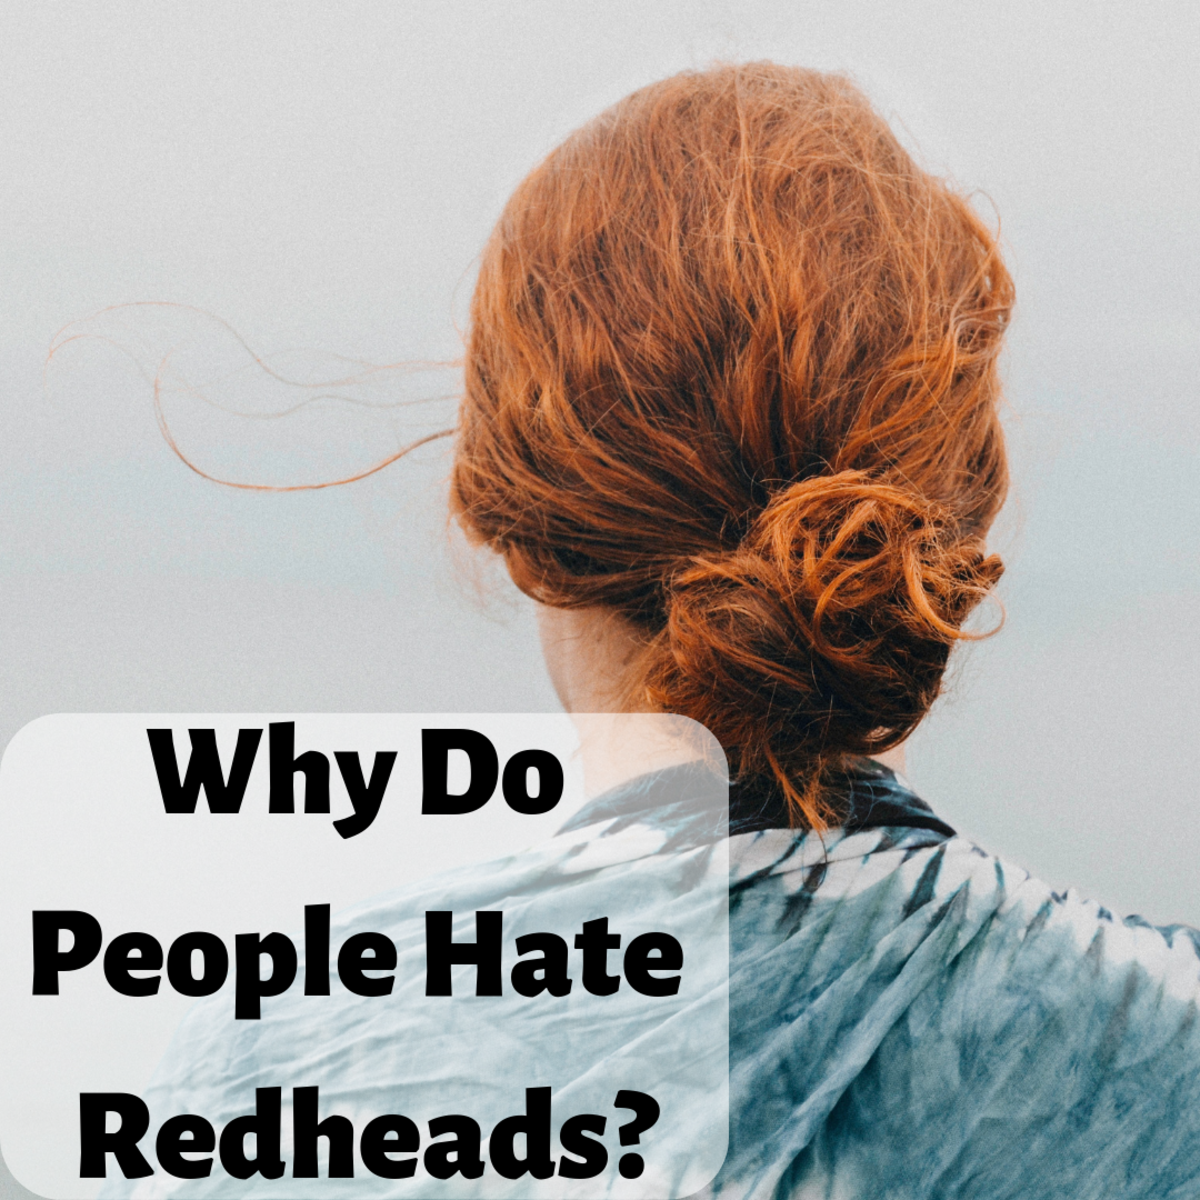 Why Do People Hate Redheads?